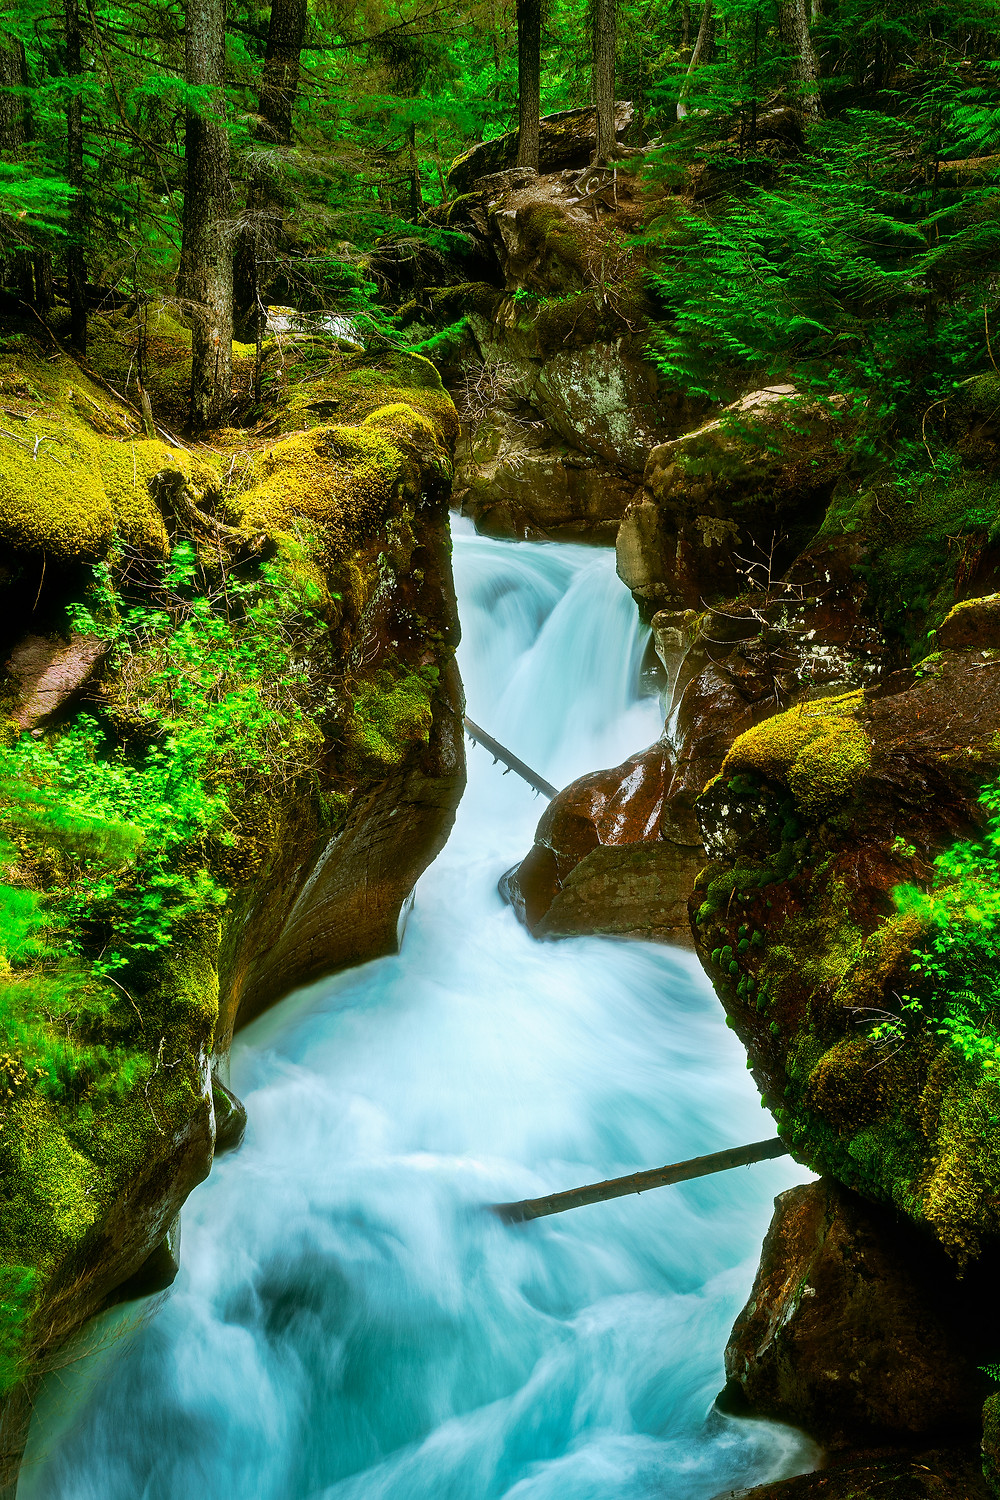 Glacial blue waters carving through beautiful red rock gorge in Glacier National Park.